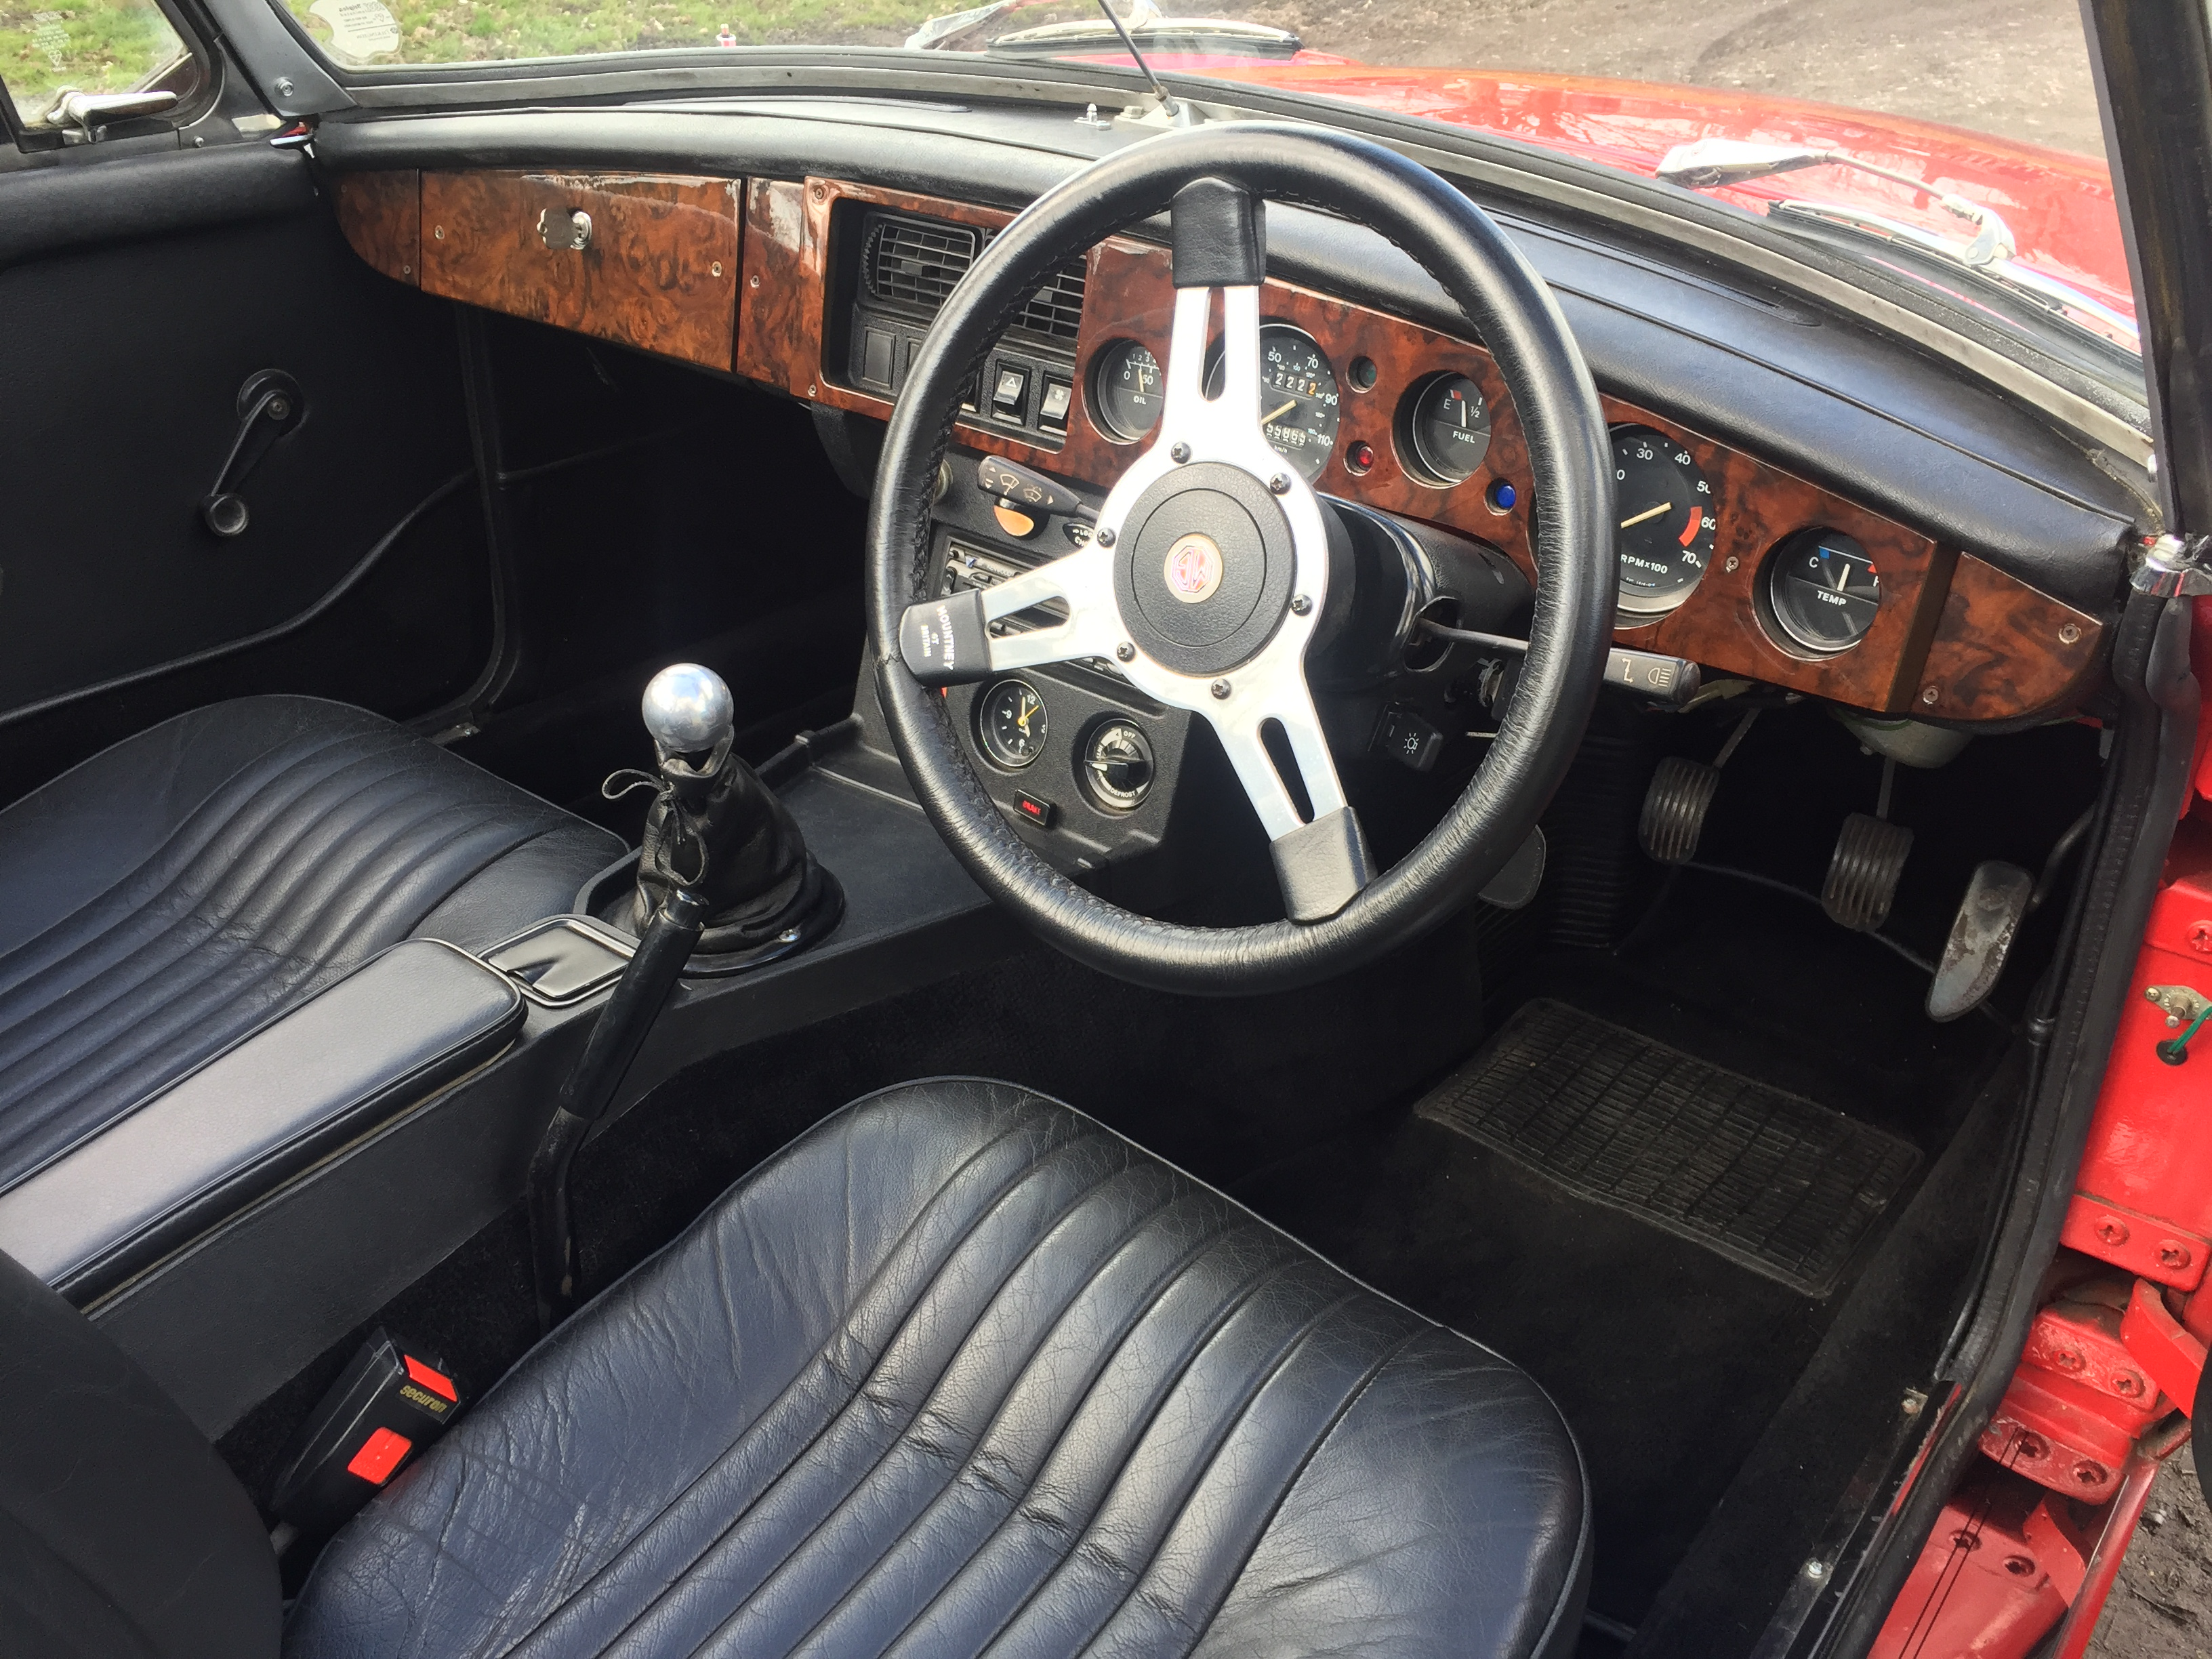 1979 MGB Roadster V8 A superb conversion carried out to an